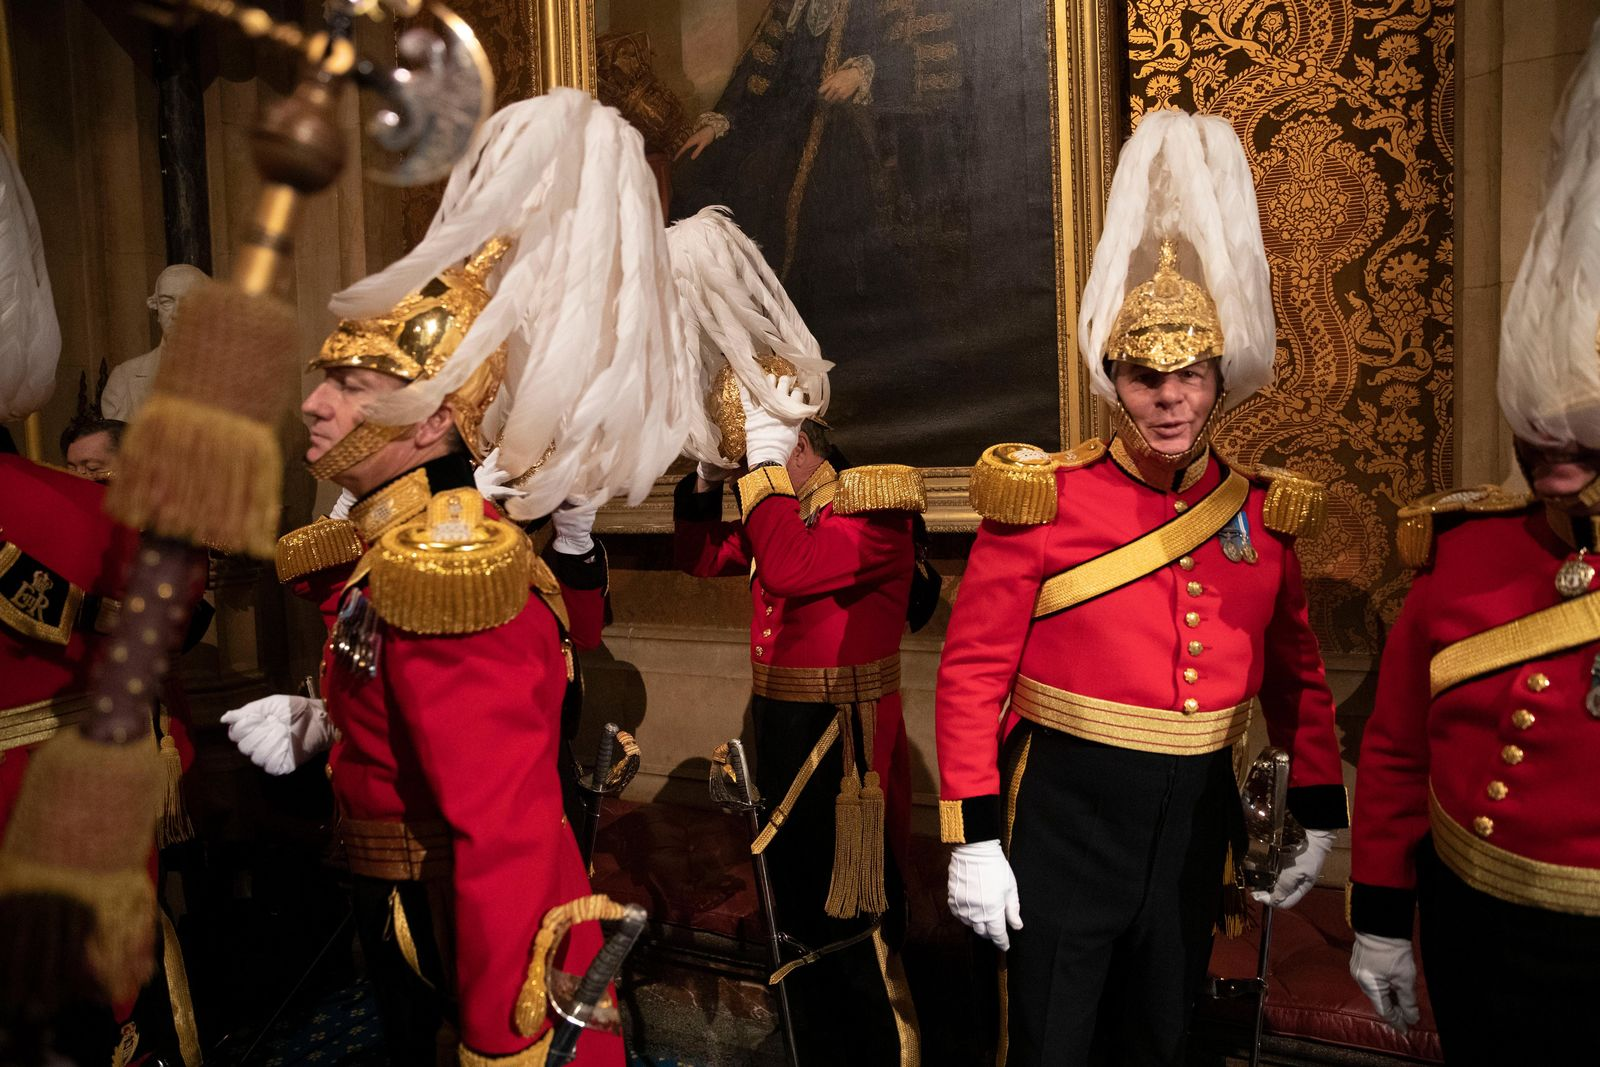 Members of the Honourable Corps of Gentlemen at Arms get ready to line-up in the Norman Porch at the Palace of Westminster and the Houses of Parliament at the State Opening of Parliament ceremony in London, Monday, Oct. 14, 2019. (AP Photo/Matt Dunham, Pool)